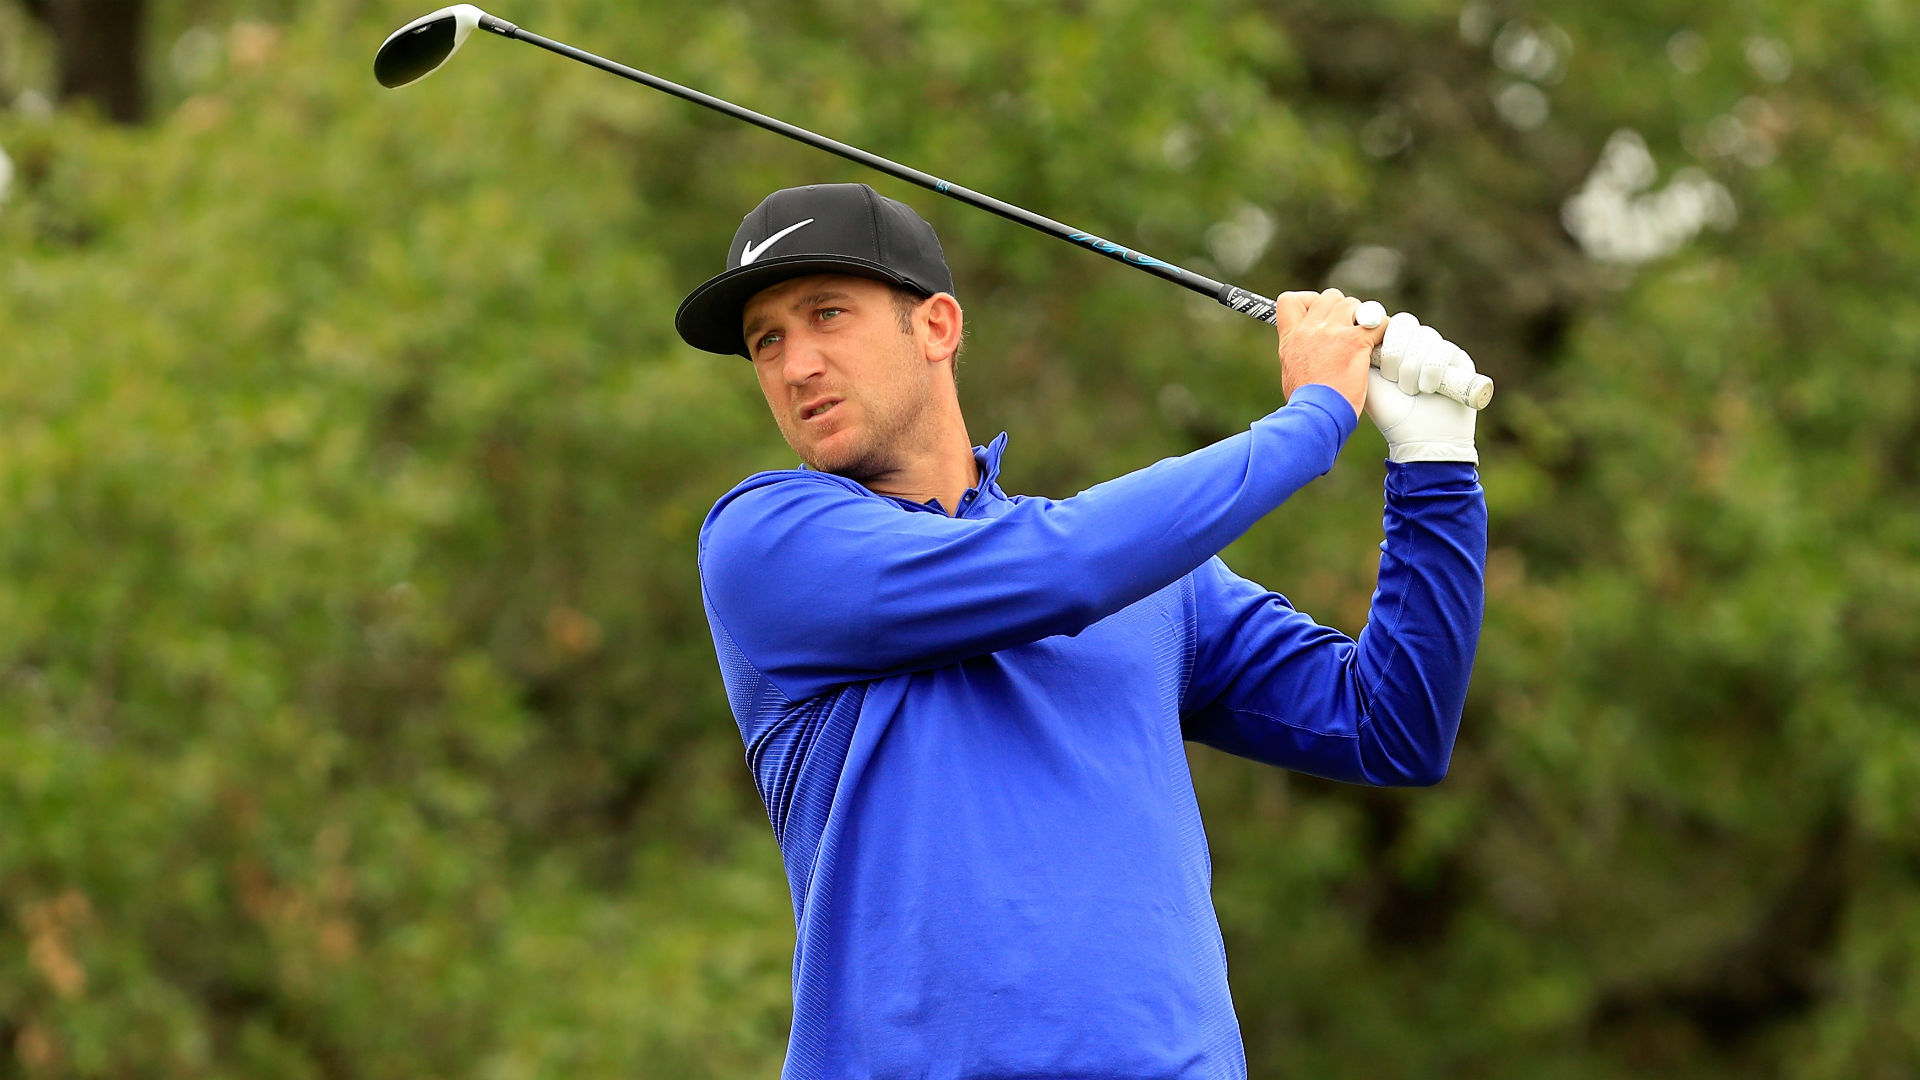 Kevin Chappell Overcomes Windy Conditions and Takes Lead at Valero Texas Open